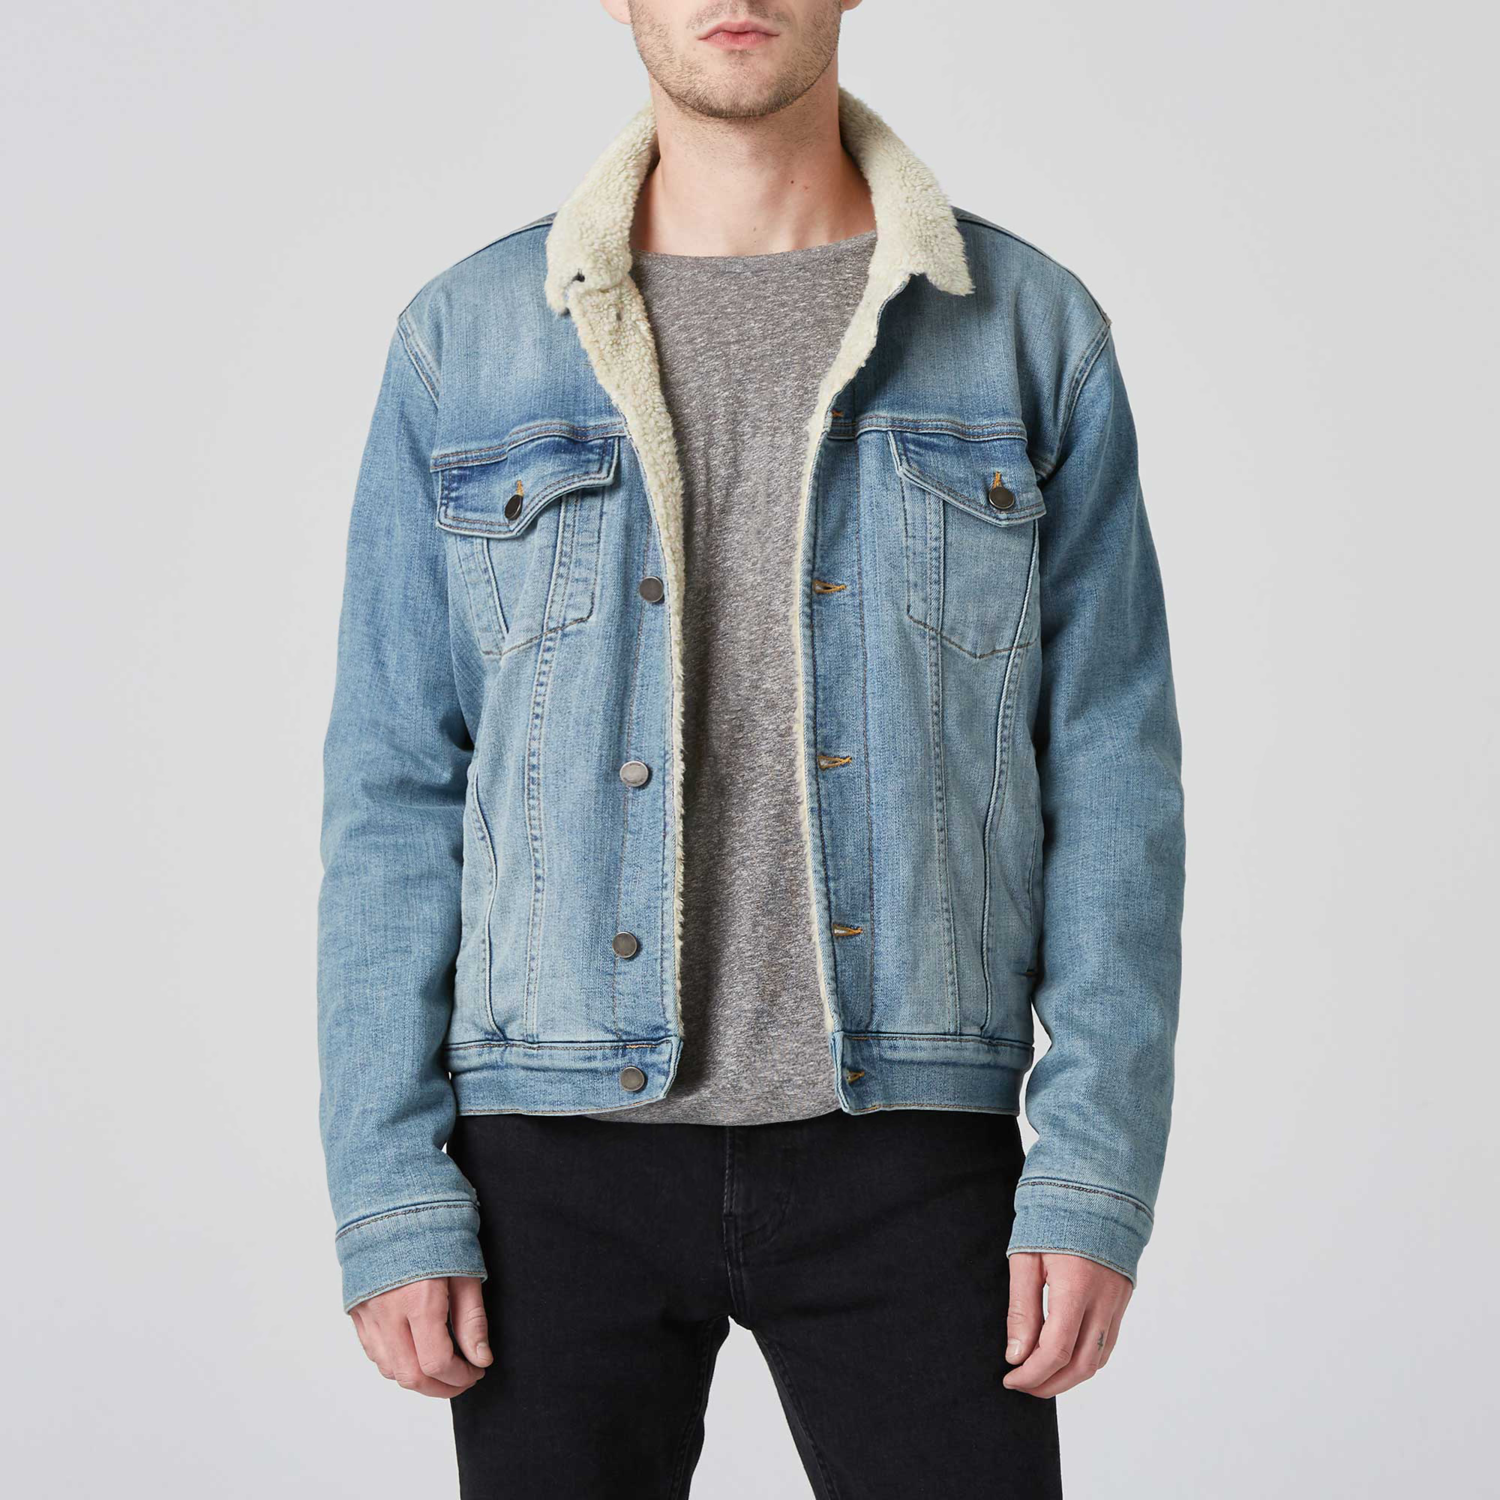 Our Men S Sherpa Denim Jacket In Vintage Blue Is Designed For An Authentically Worn In Look And Feel The C Lined Denim Jacket Sherpa Denim Jacket Denim Jacket [ 1500 x 1500 Pixel ]